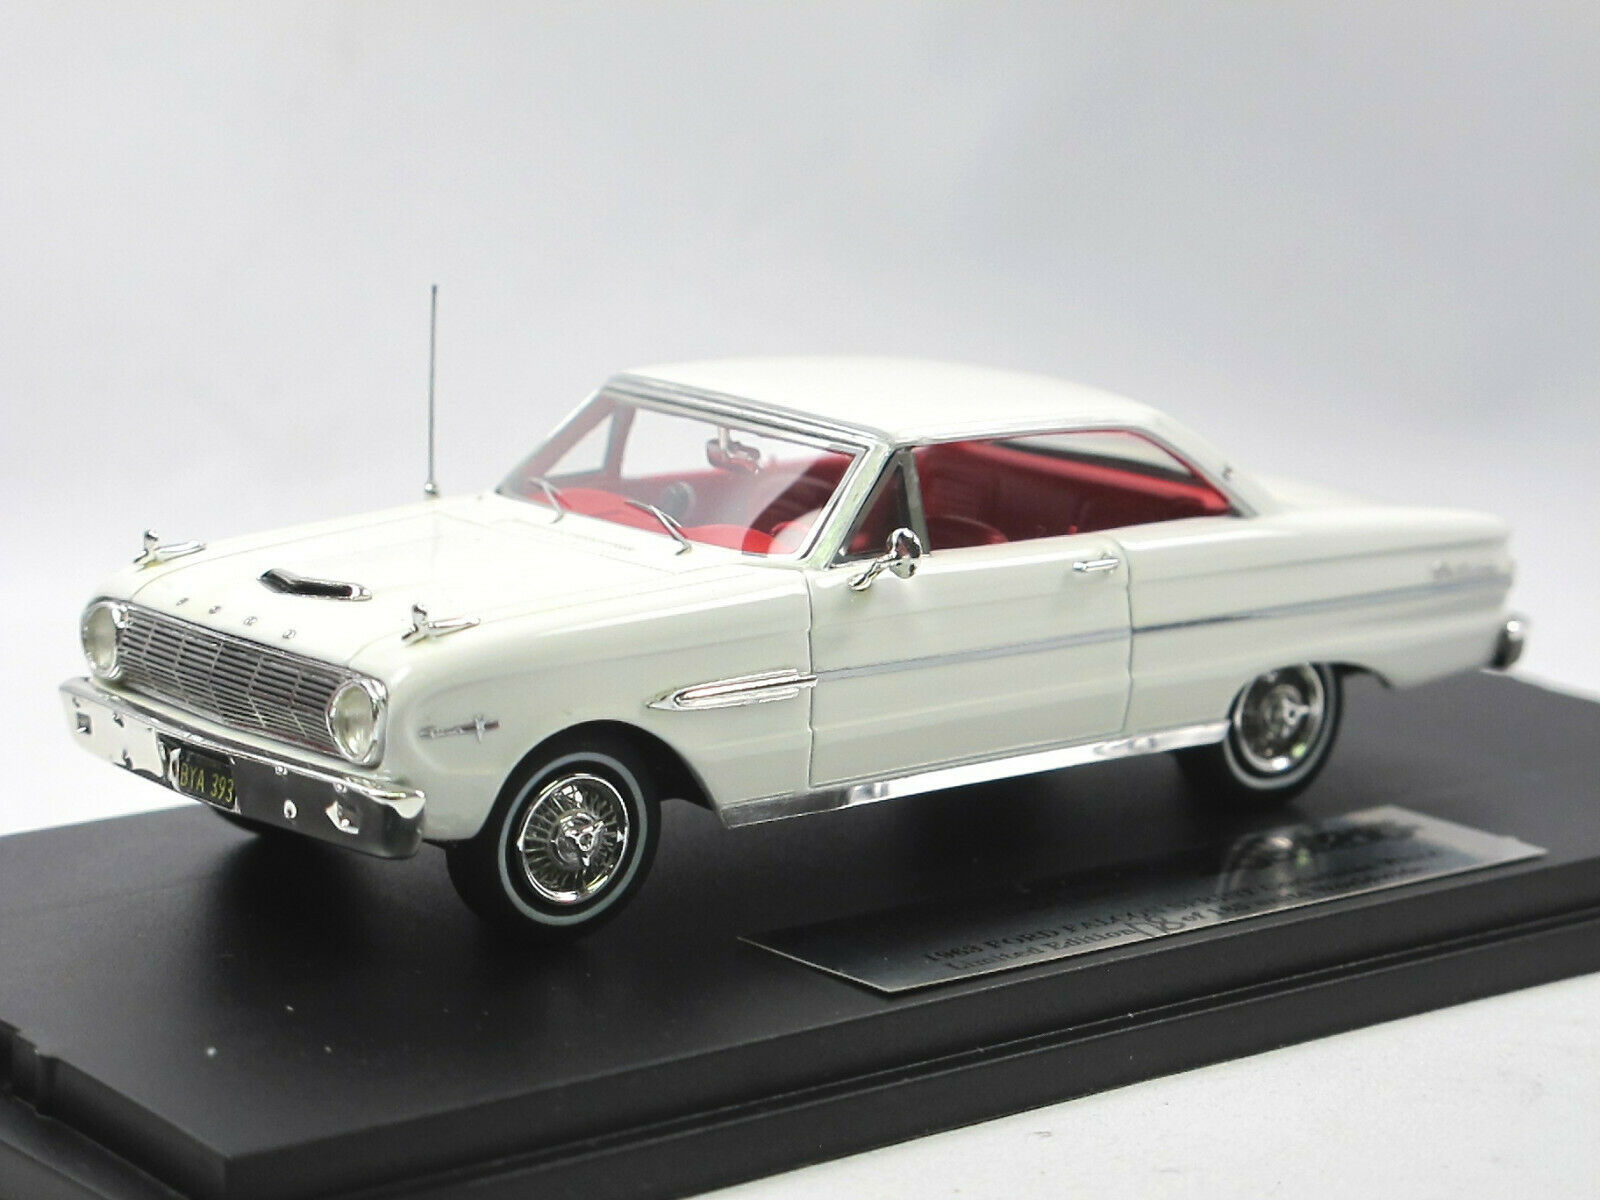 moda classica orovarg Collection gc-010b - 1963 FORD FALCON SPRINT SPRINT SPRINT bianca 1 43 Limited  più preferenziale